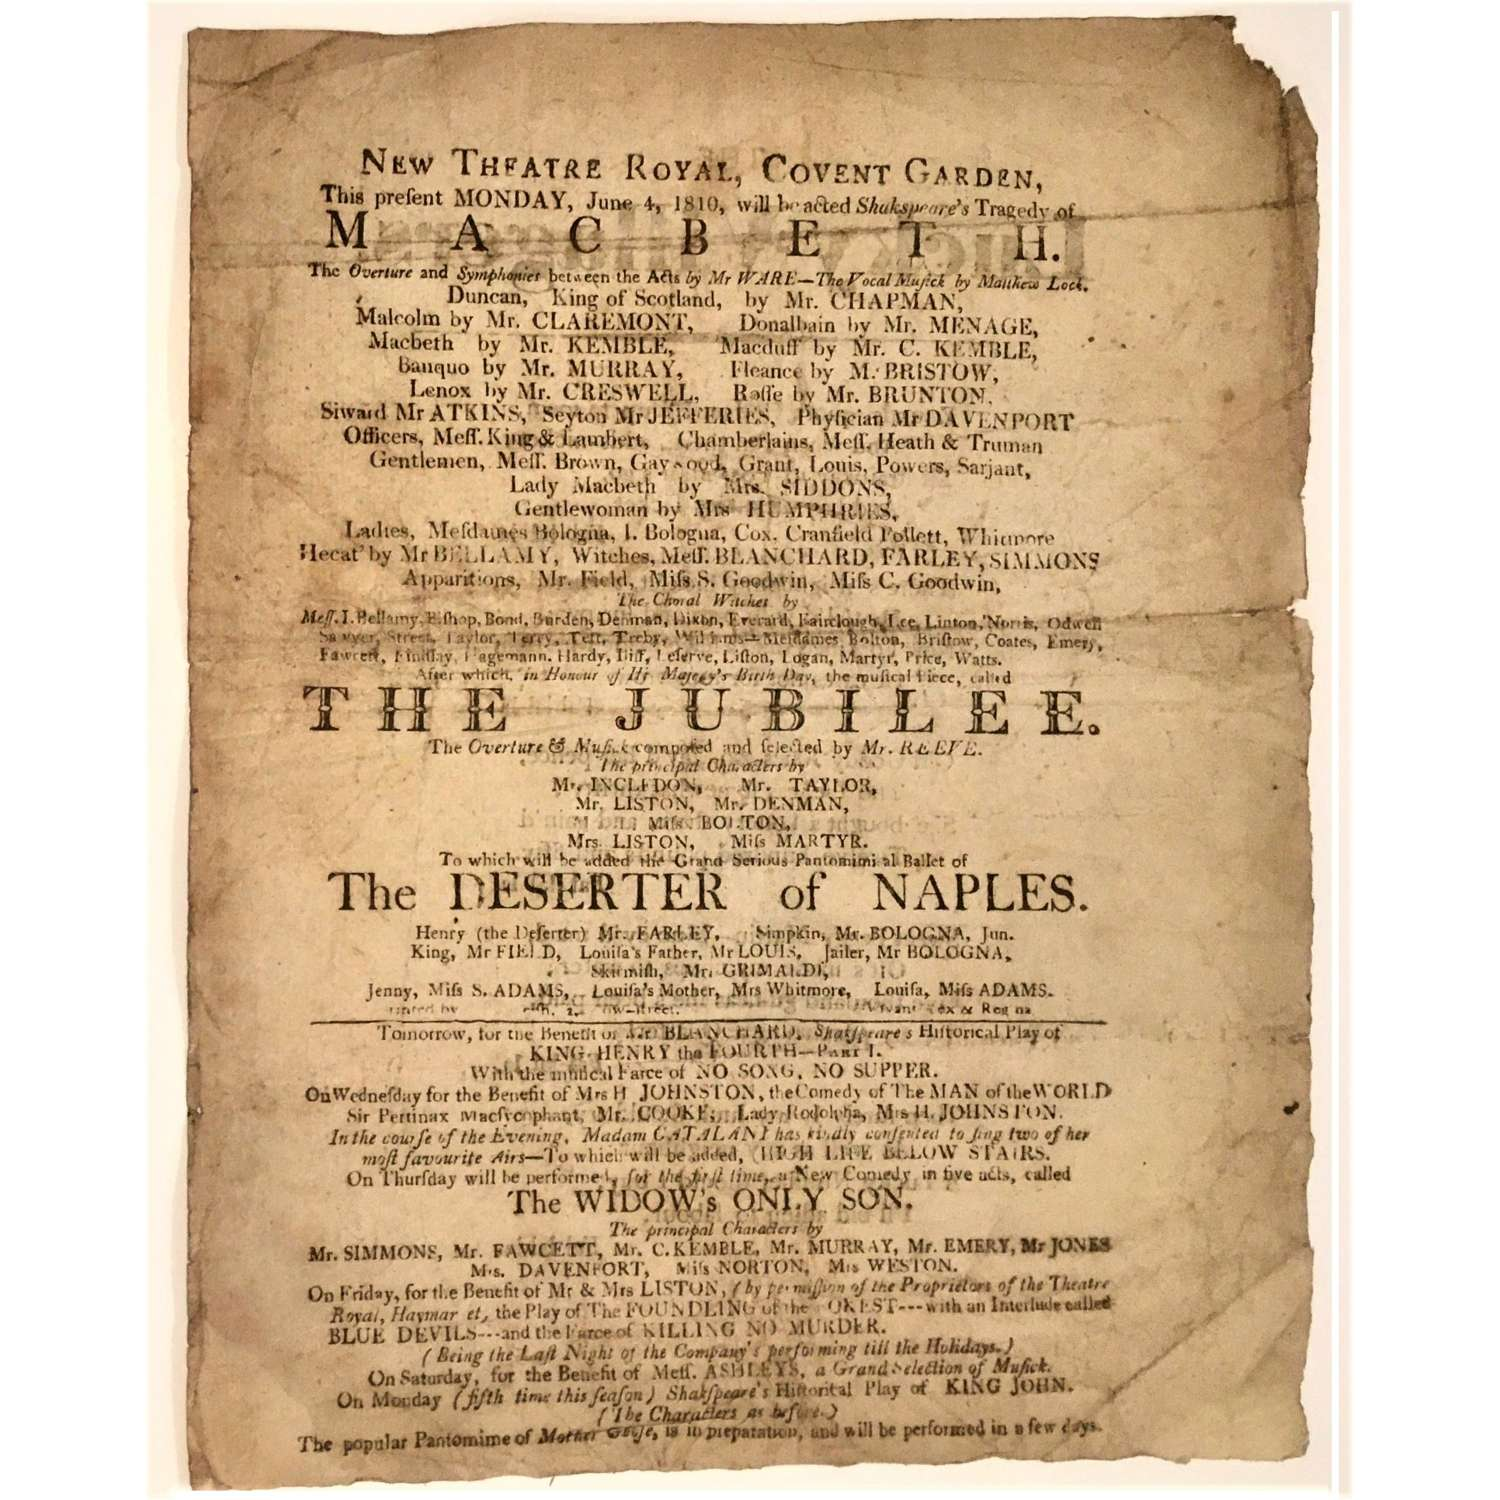 Playbill for Sarah Siddons in Macbeth, New Theatre Royal Covent Garden